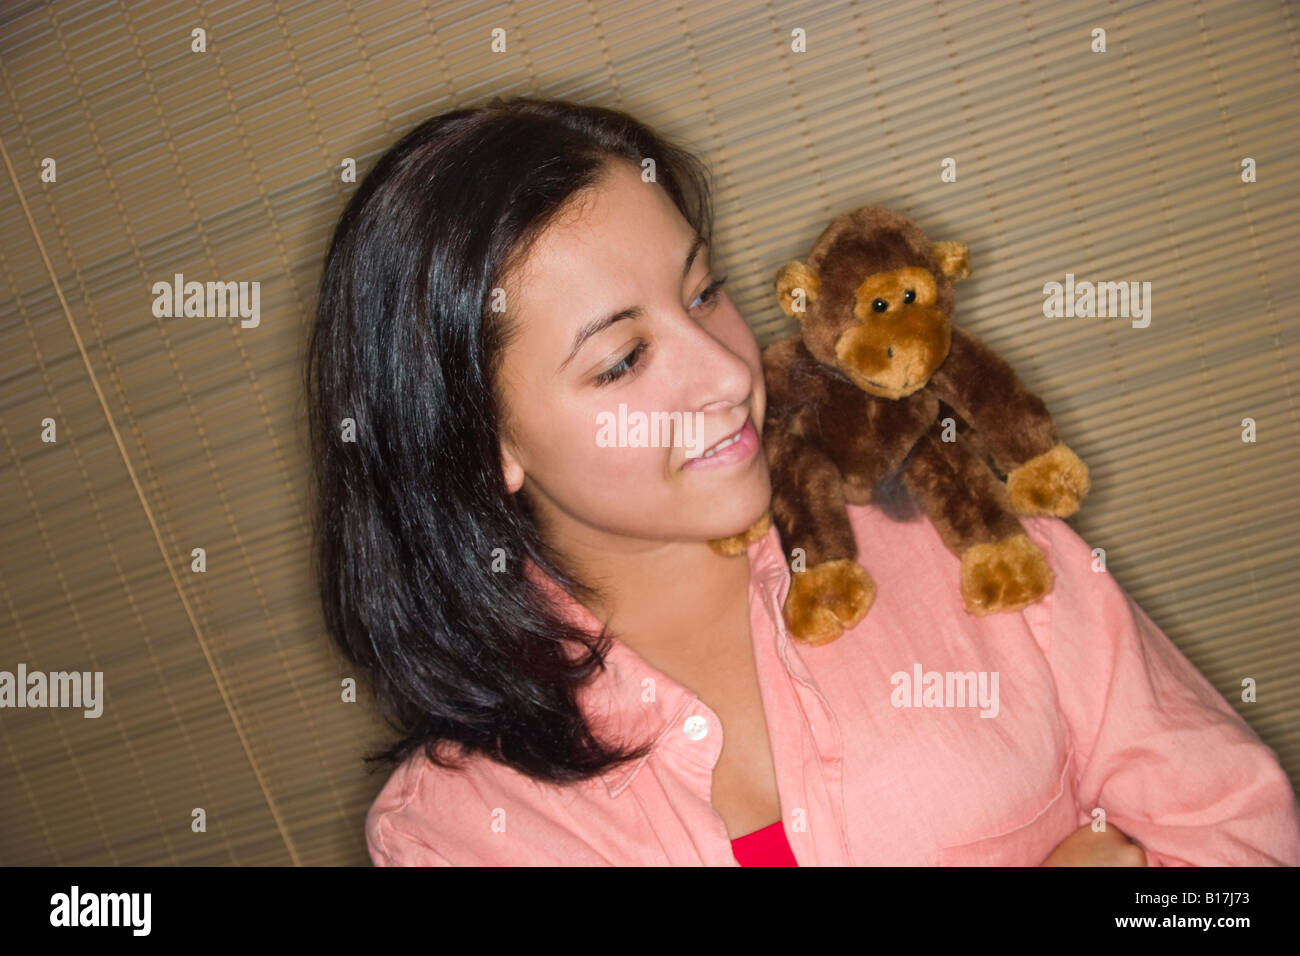 Teen girl with a stuffed animal sitting on her shoulder Model Released - Stock Image